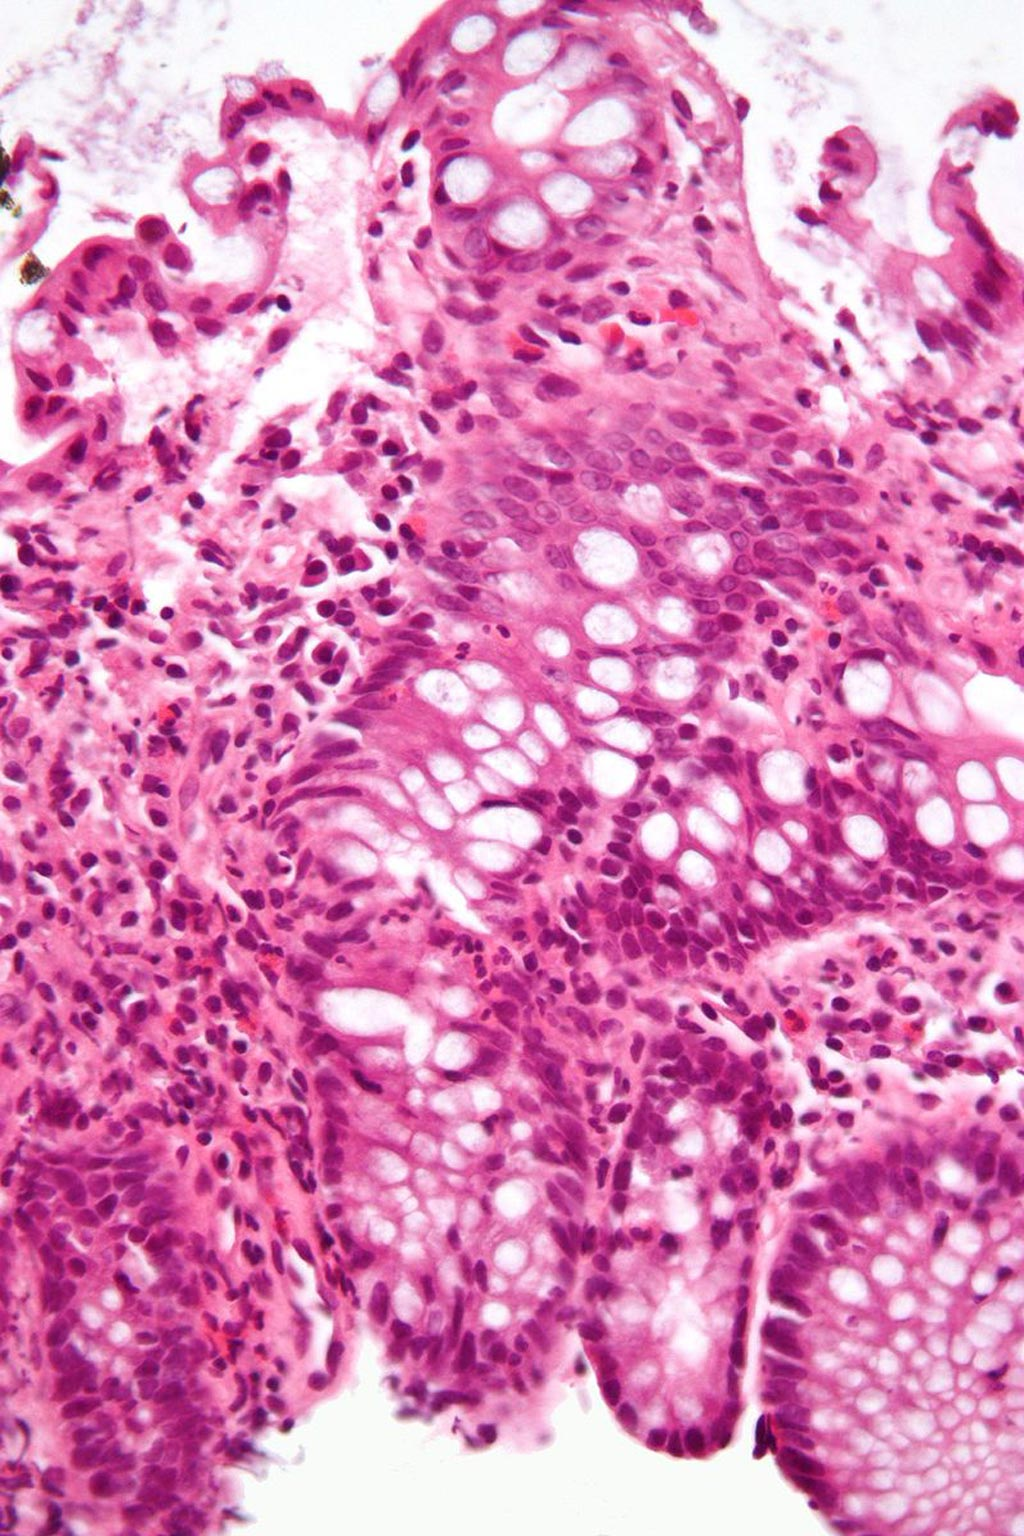 Image: A micrograph of a colonic biopsy showing inflammation of the large bowel in a case of inflammatory bowel disease (Photo courtesy of Wikimedia Commons).